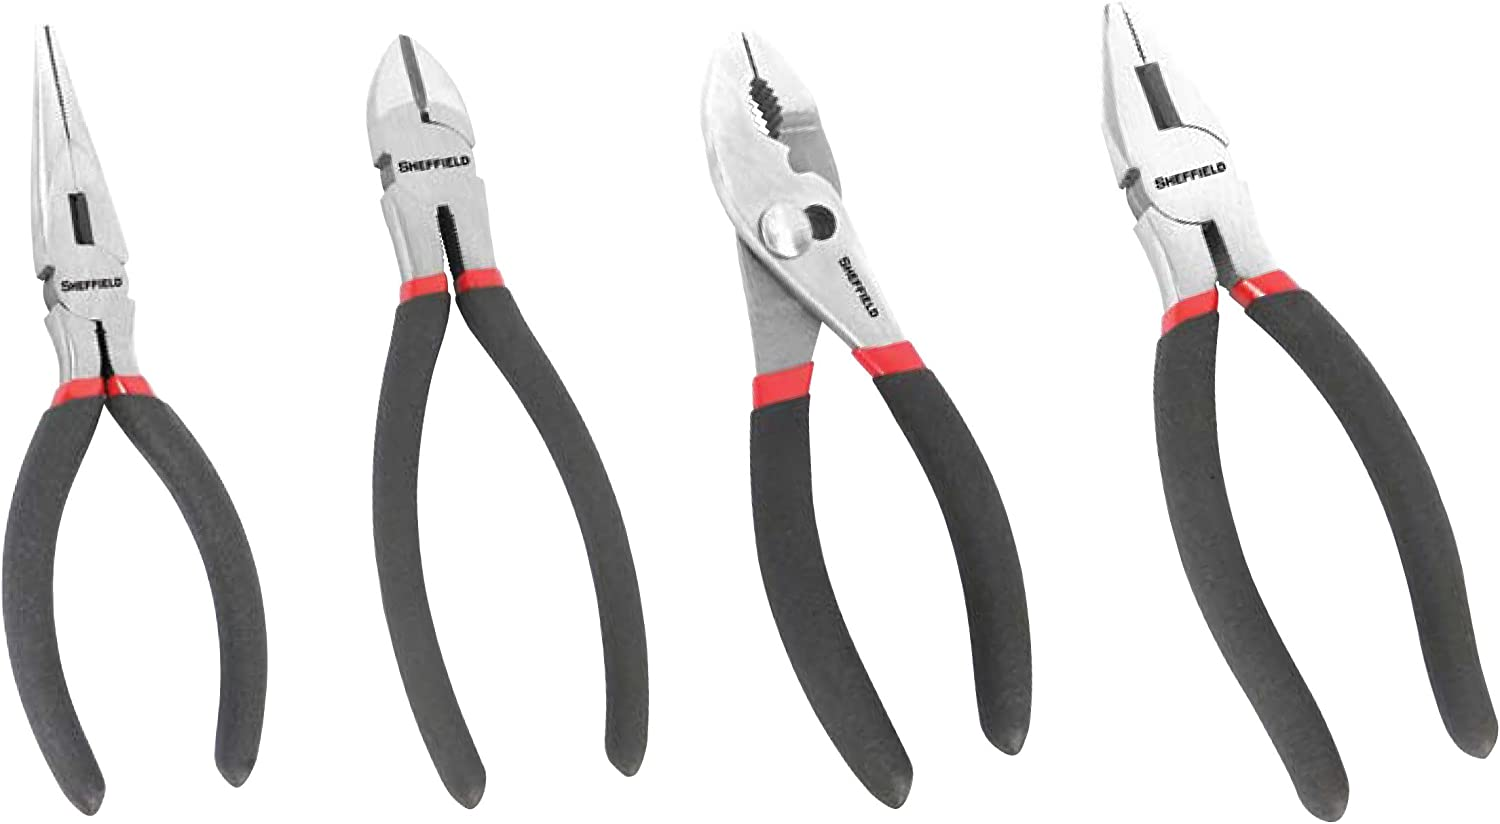 Craftsman Evolv 2 Pc Pliers Set slip joint pliers and long nose pliers